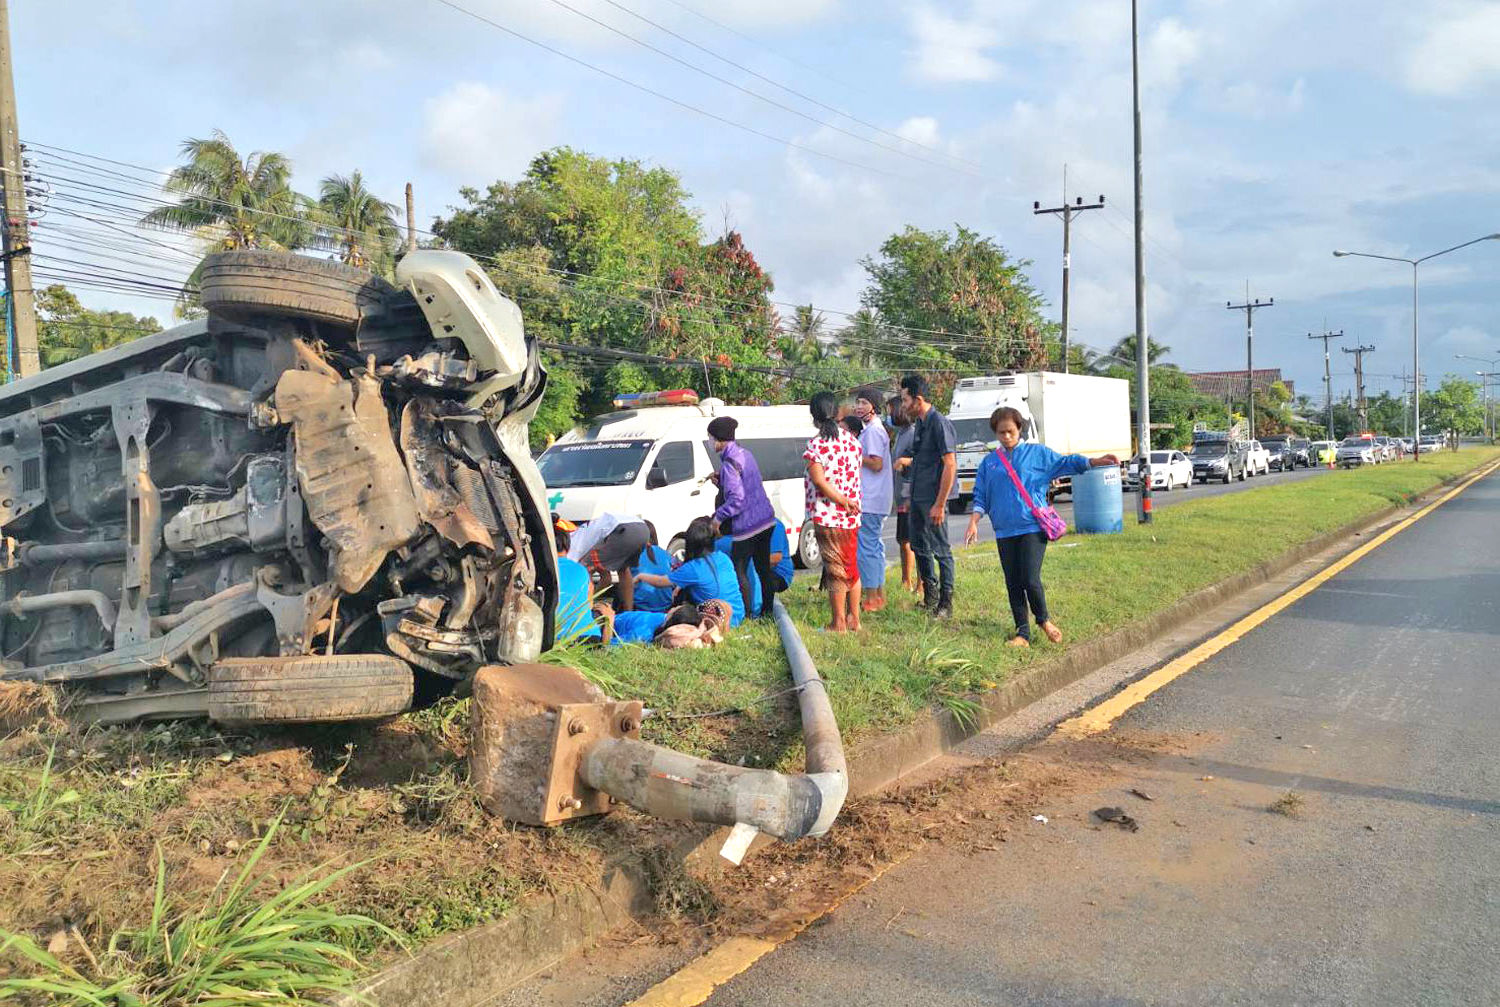 Truck overturns in Songkhla, injuring 12 | News by Thaiger